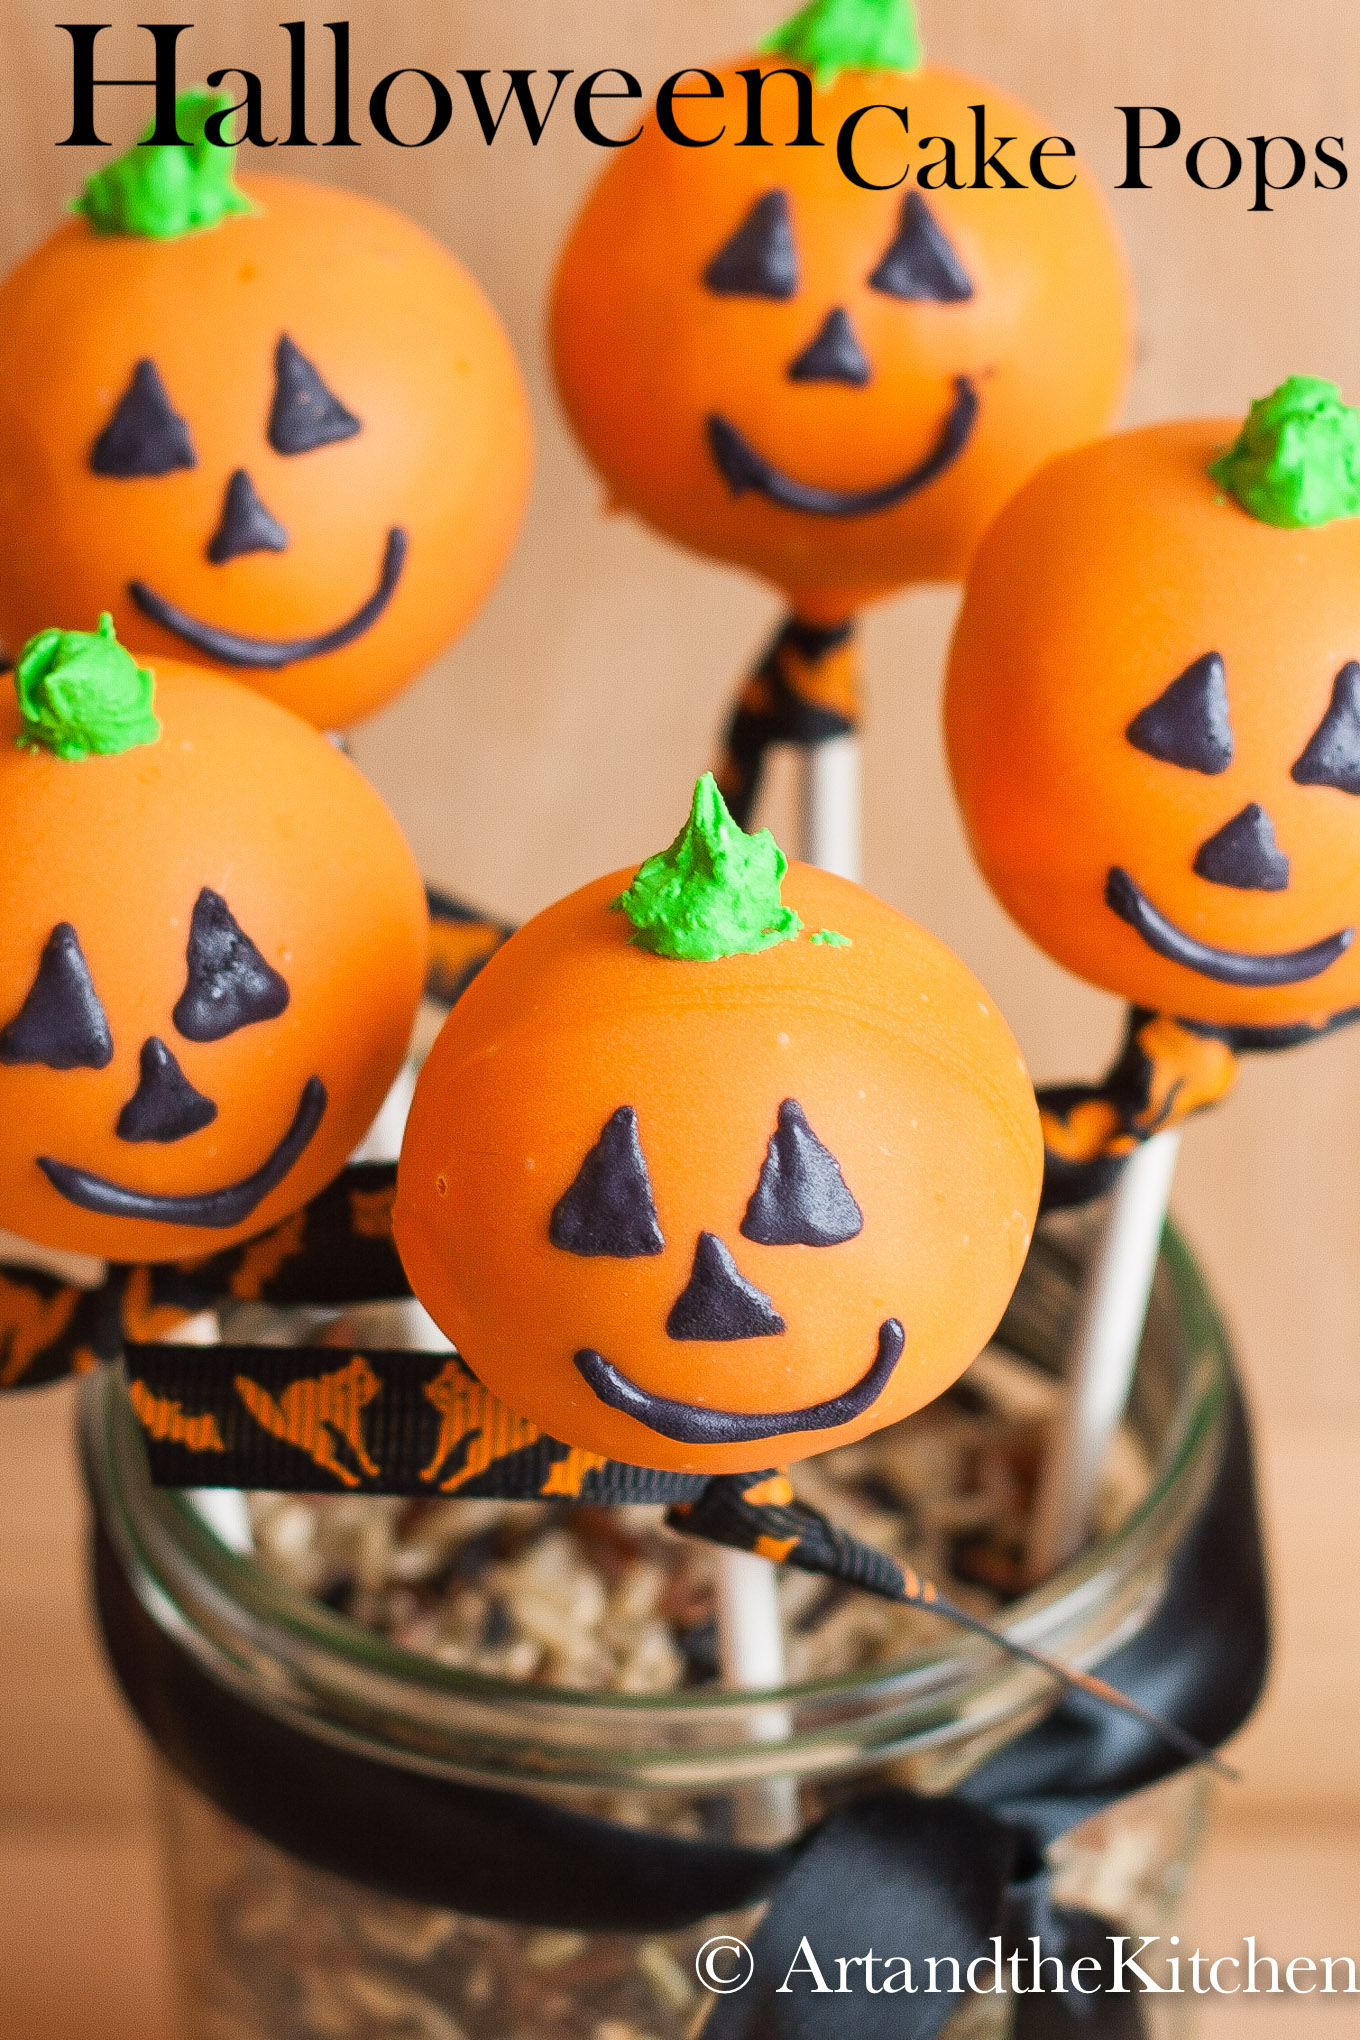 Delicious Halloween Cake Pops decorated like Jack O Lanterns make great treats for a Halloween Party and yummy homemade treats for those special Trick-or-Treaters.